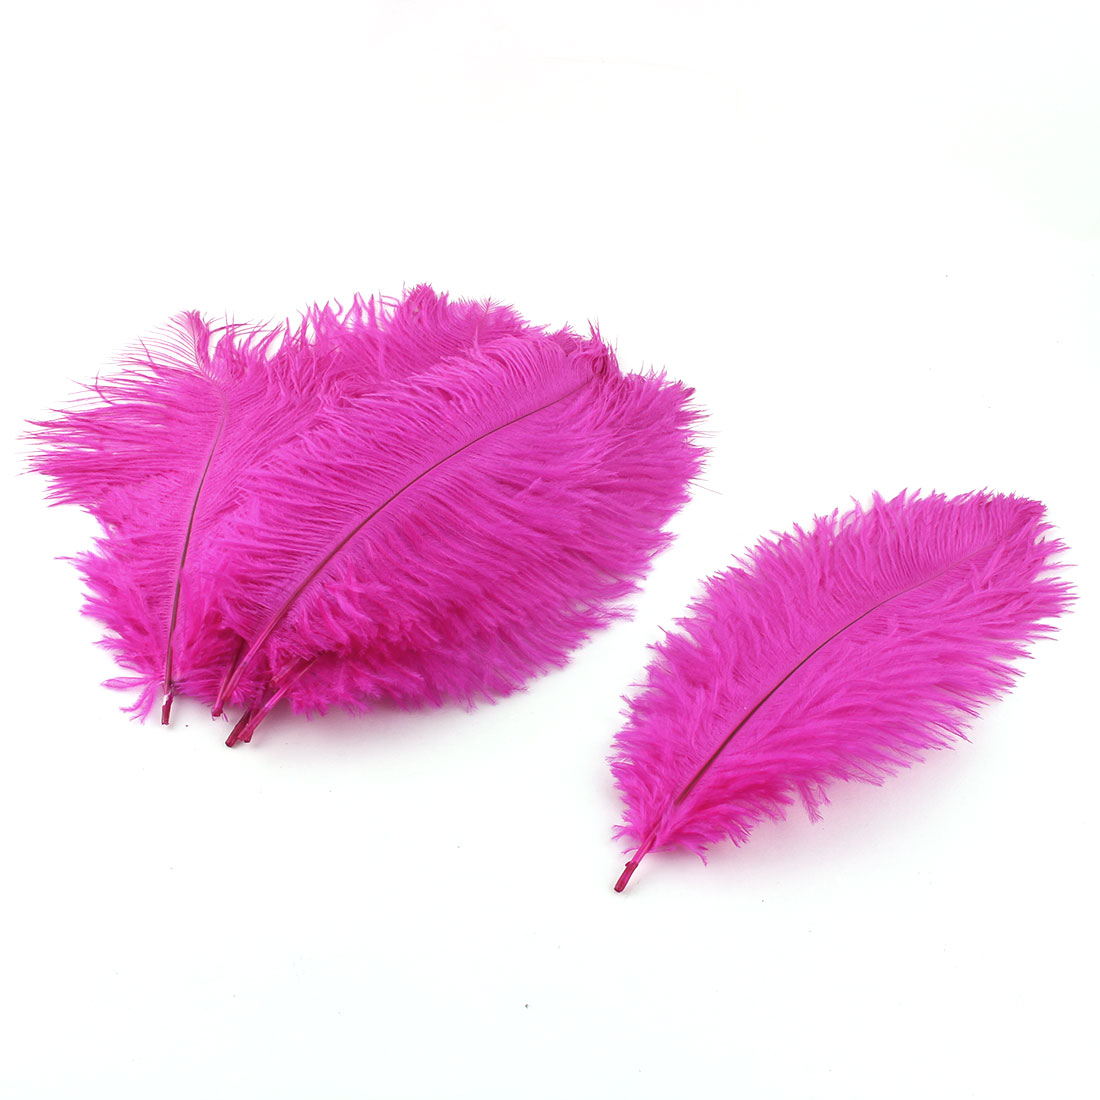 Wedding Party Clothes DIY Decor Ostrich Feathers Plume Fuchsia 20-25cm Length 10pcs